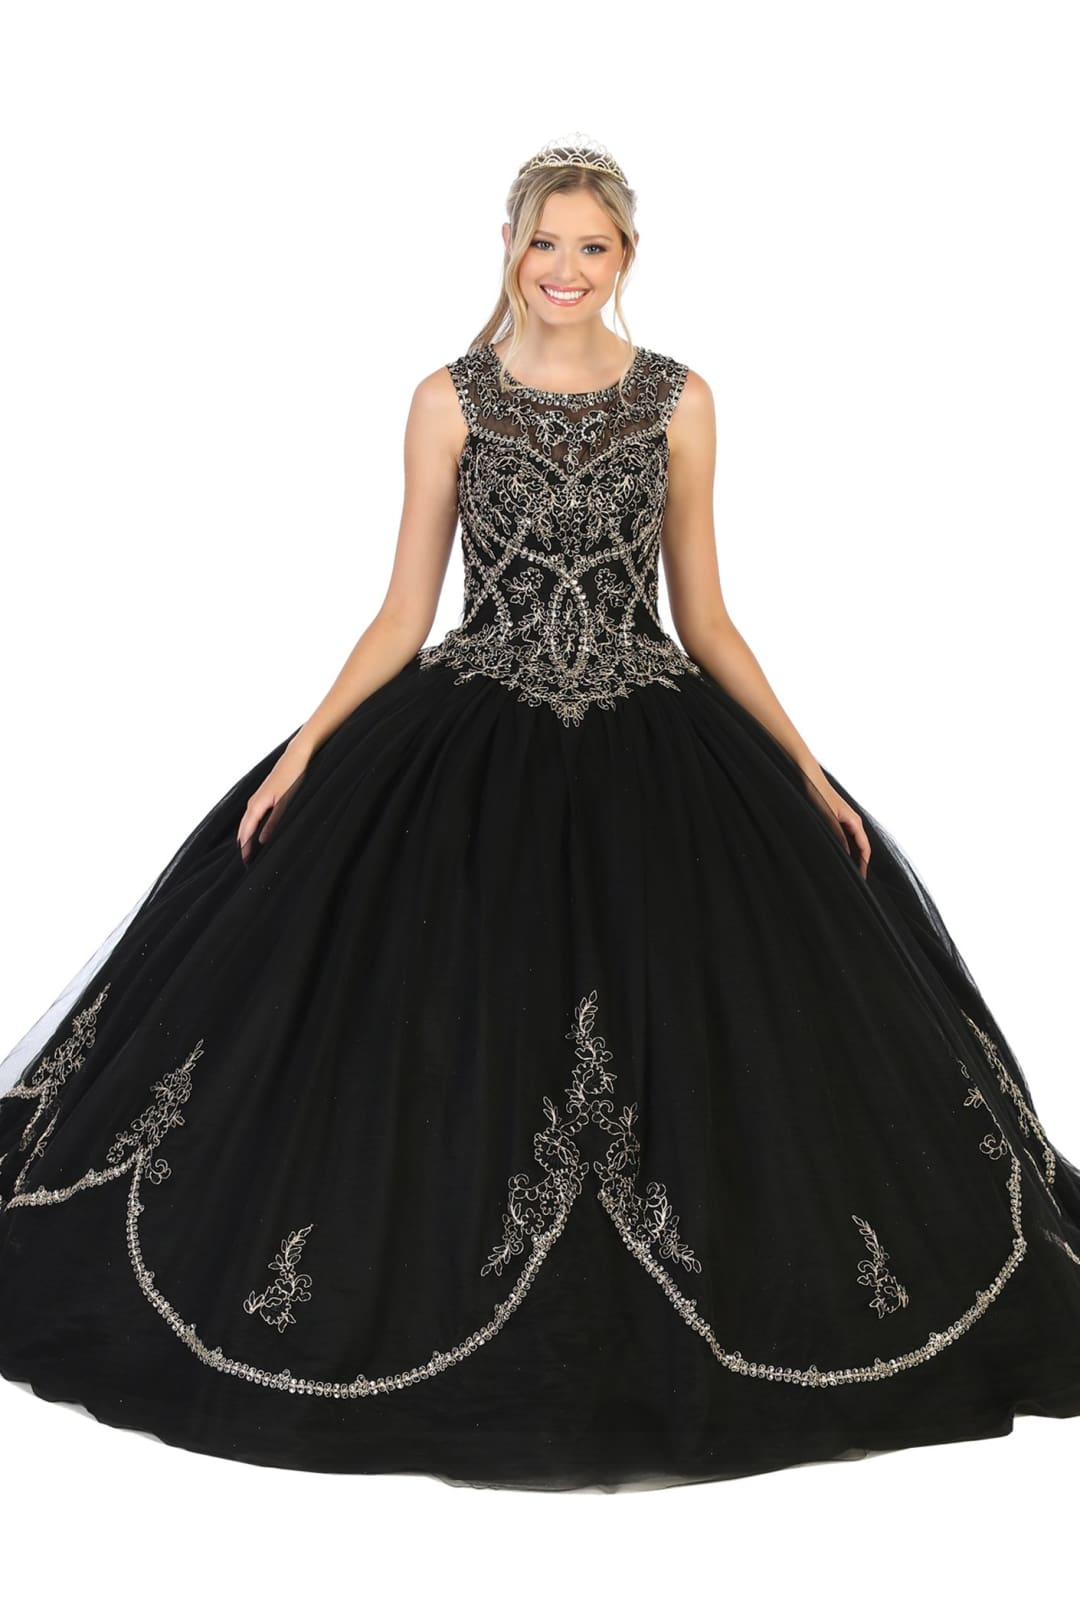 Enchanting Quinceanera Ball Gown - Black/Gold / 4